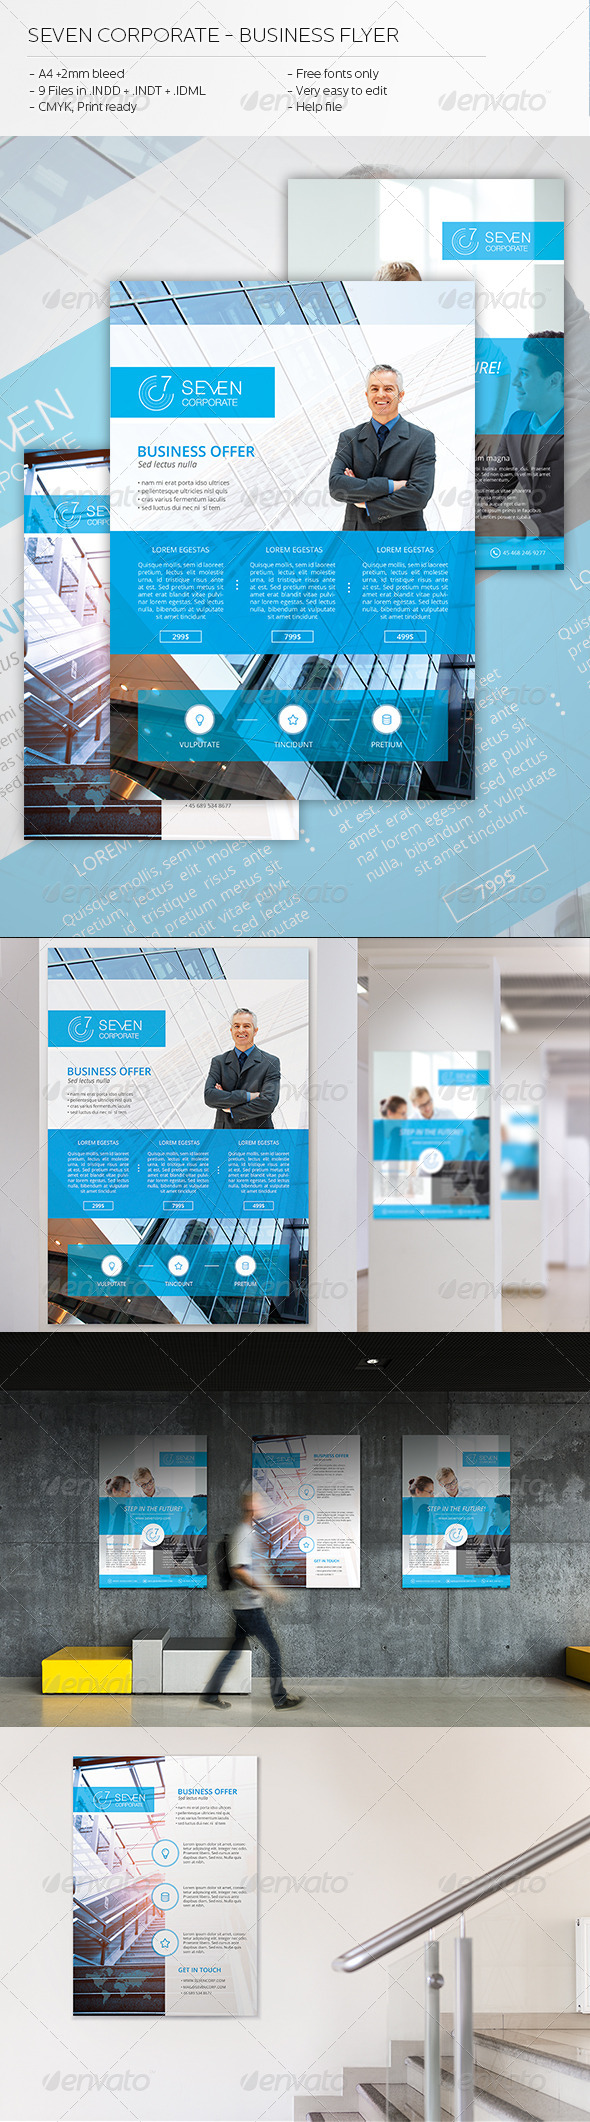 GraphicRiver Seven Corporate Business Flyer 6836499